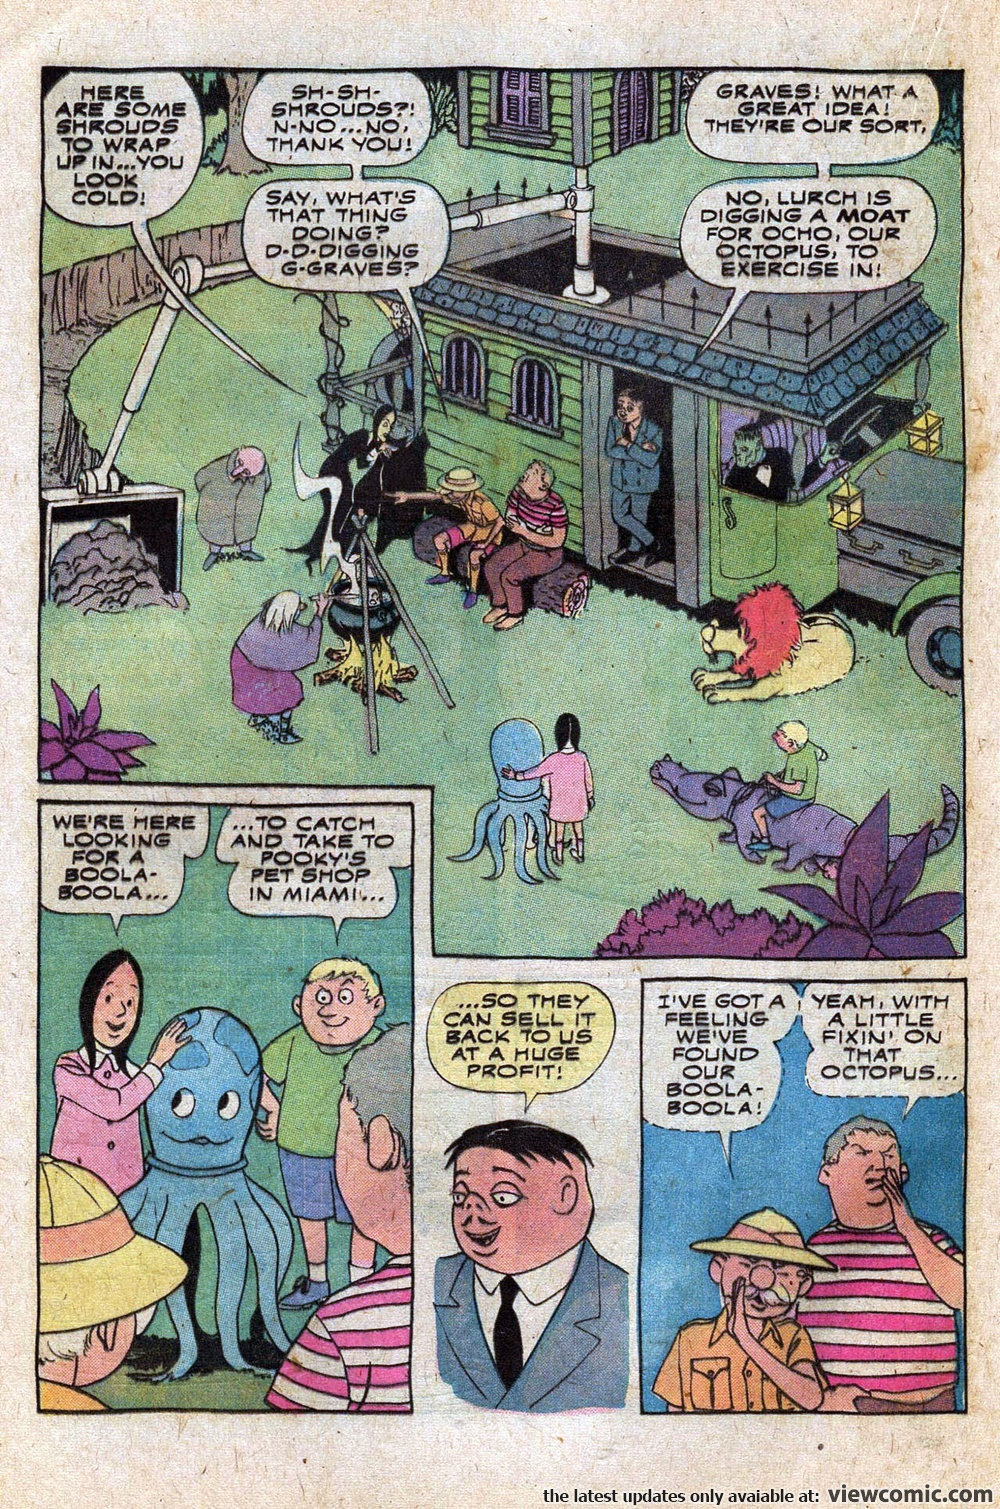 Addams Family 01 (1974)   Viewcomic reading comics online for free 2018